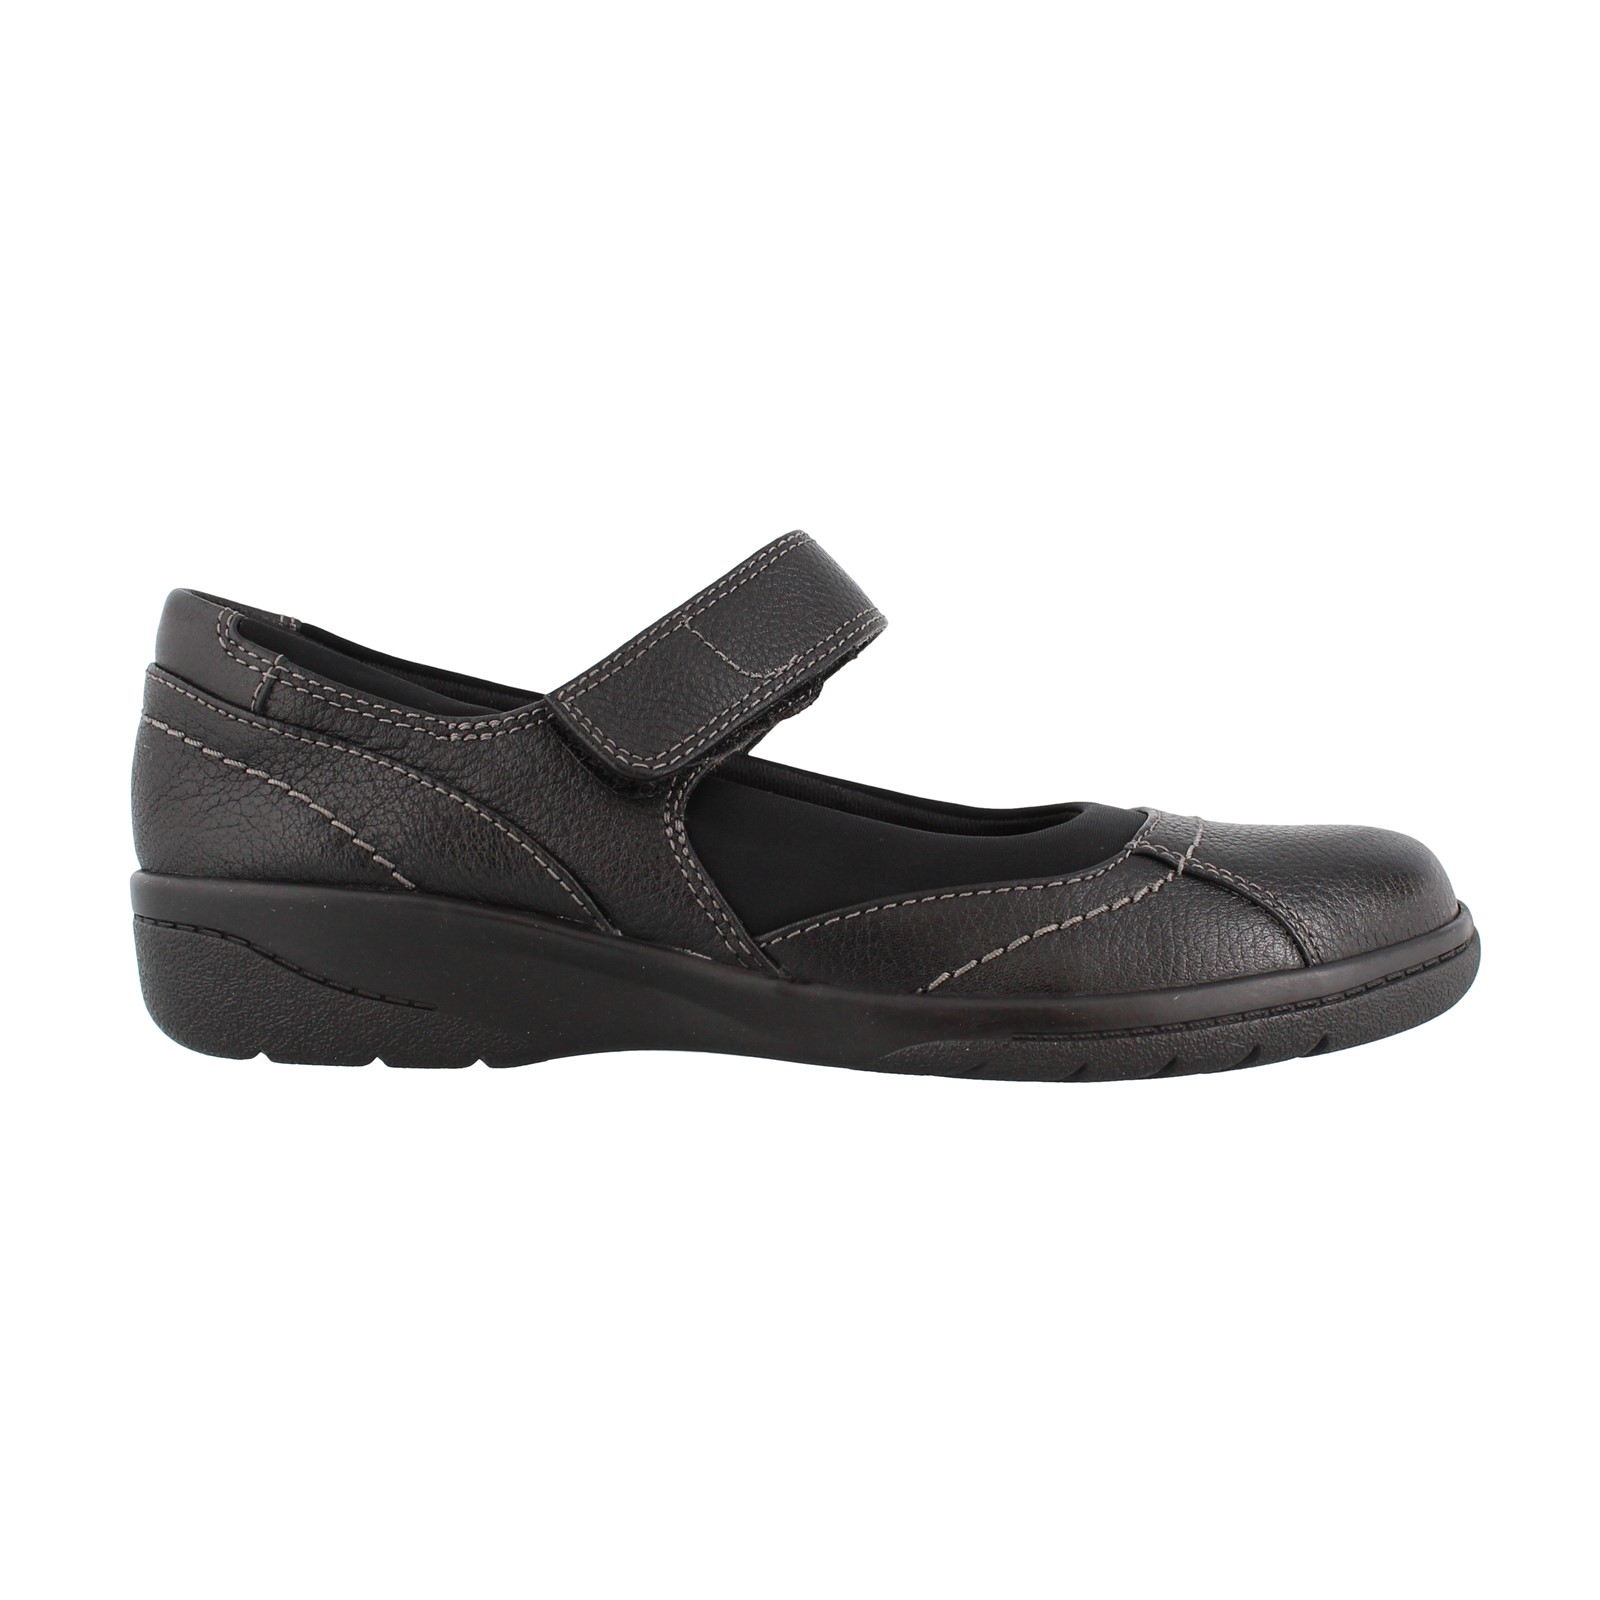 Women's Clarks, Cheyn Web Slip on Shoes